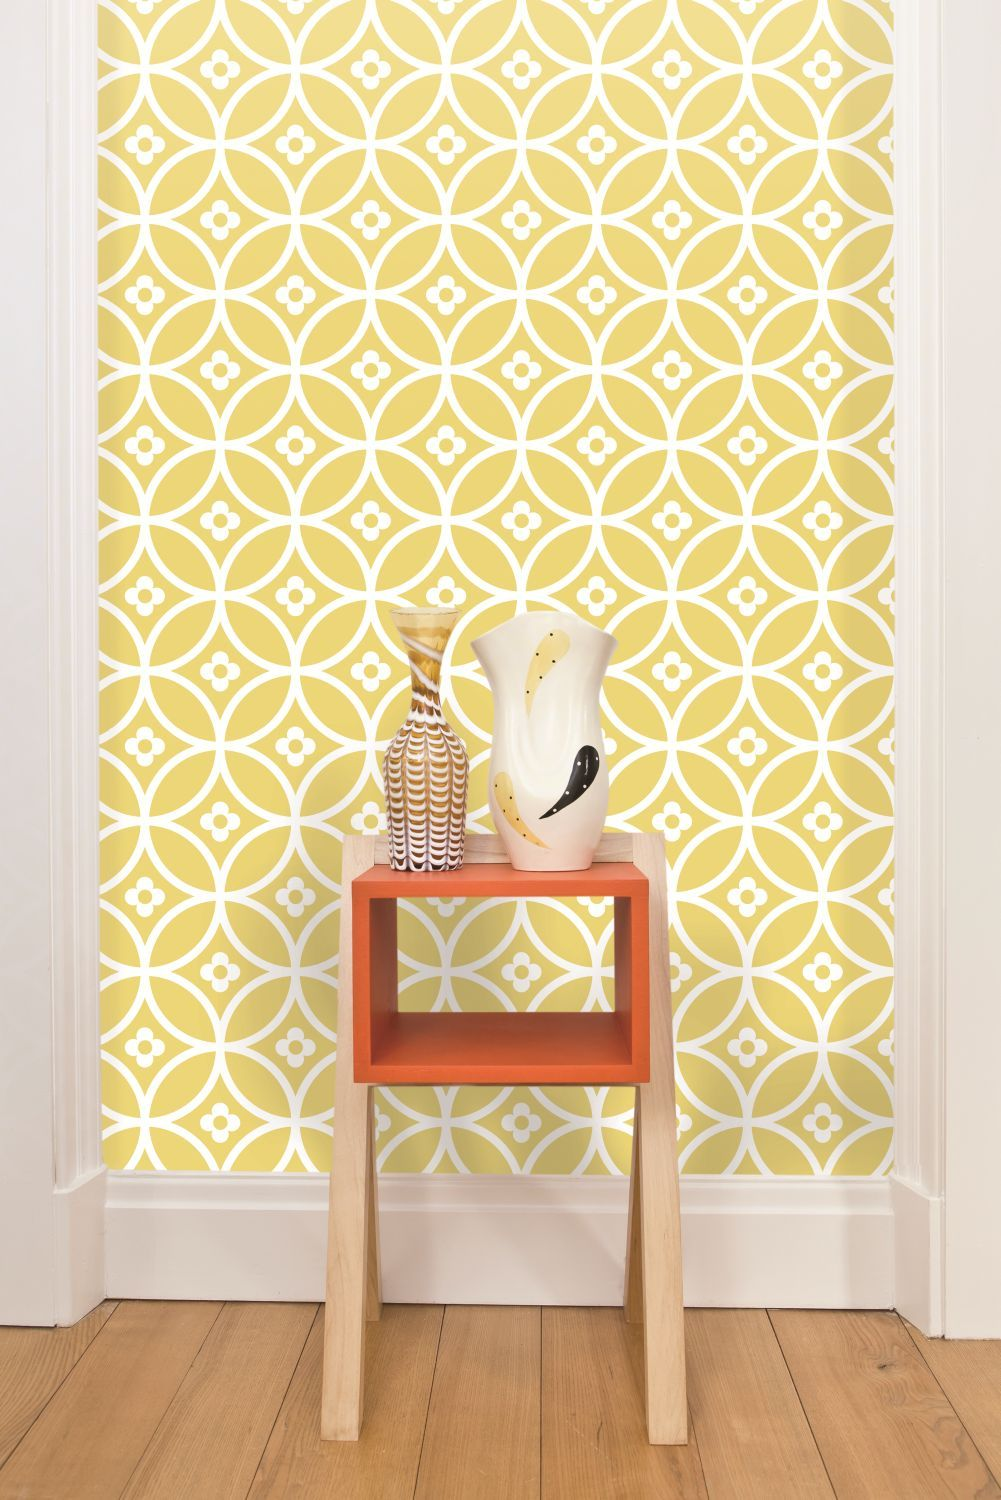 Daisy Chain Small , Wallpaper, LF1013 | Wallpaper, Room and Living rooms